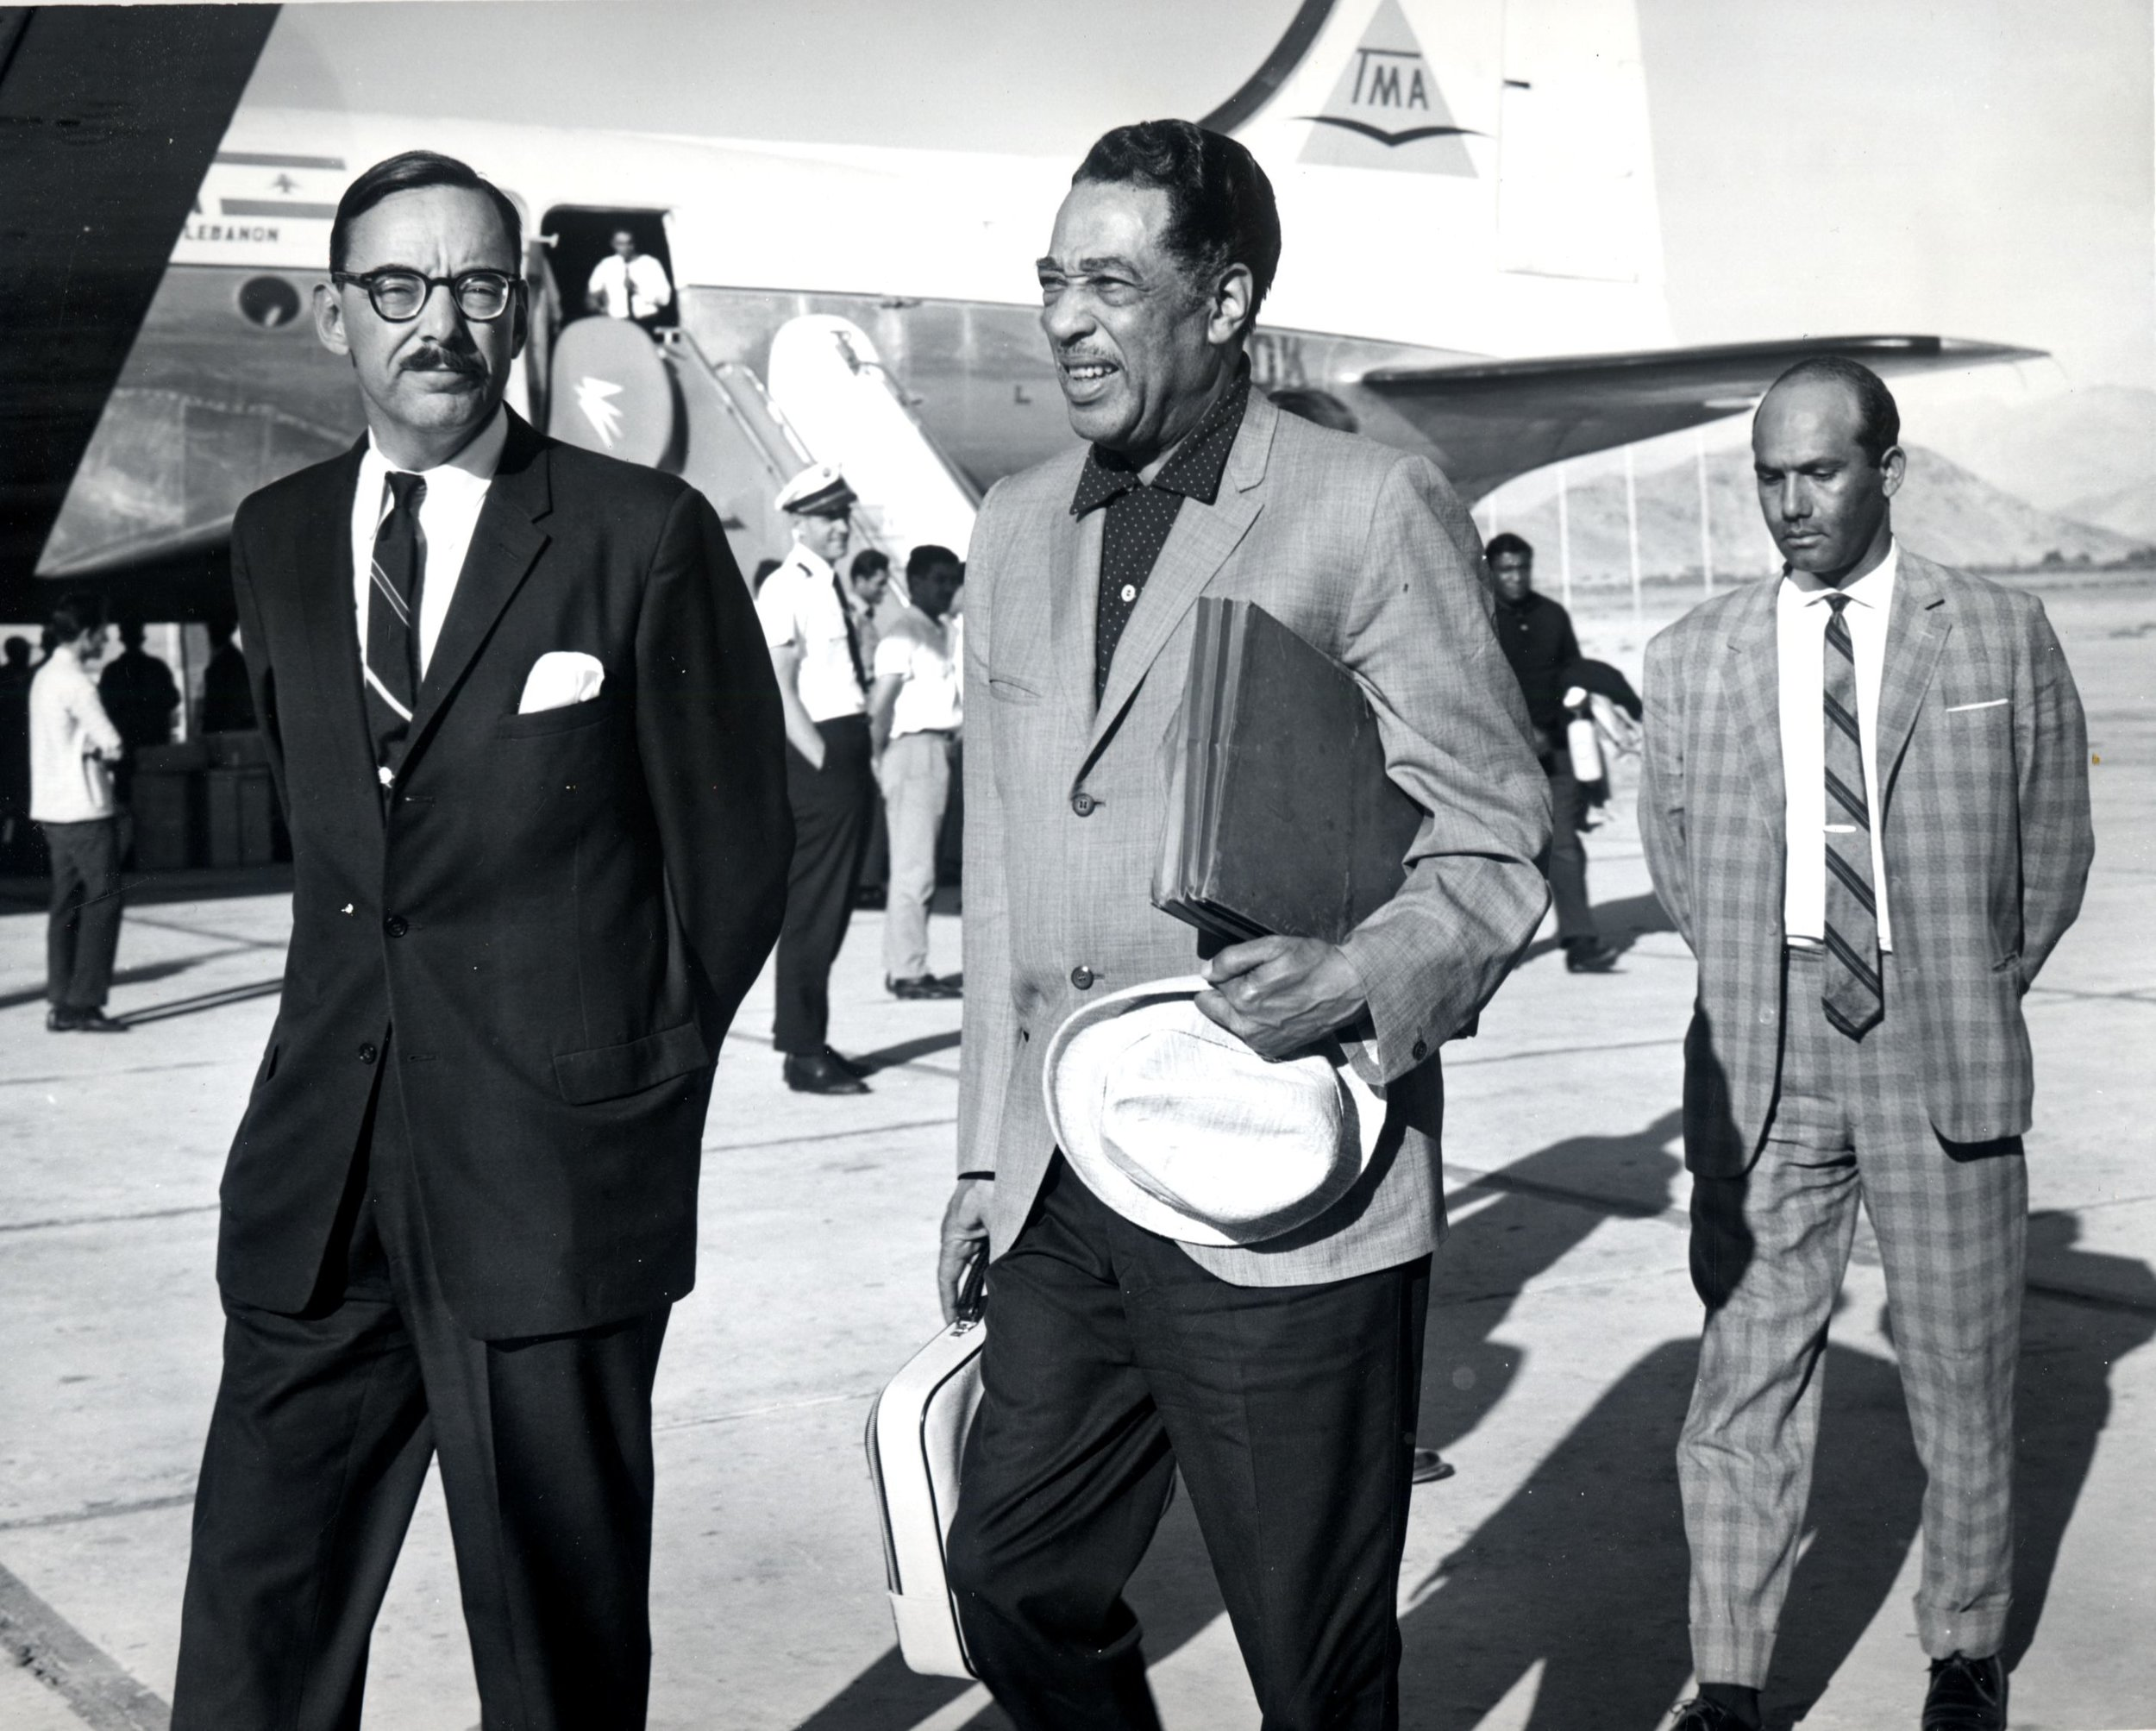 Duke Ellington arrives in Lebanon during his 1963 State Department tour of India and the Near and Middle East. Credit: Courtesy of the J. William Fulbright Collection, University of Arkansas Libraries